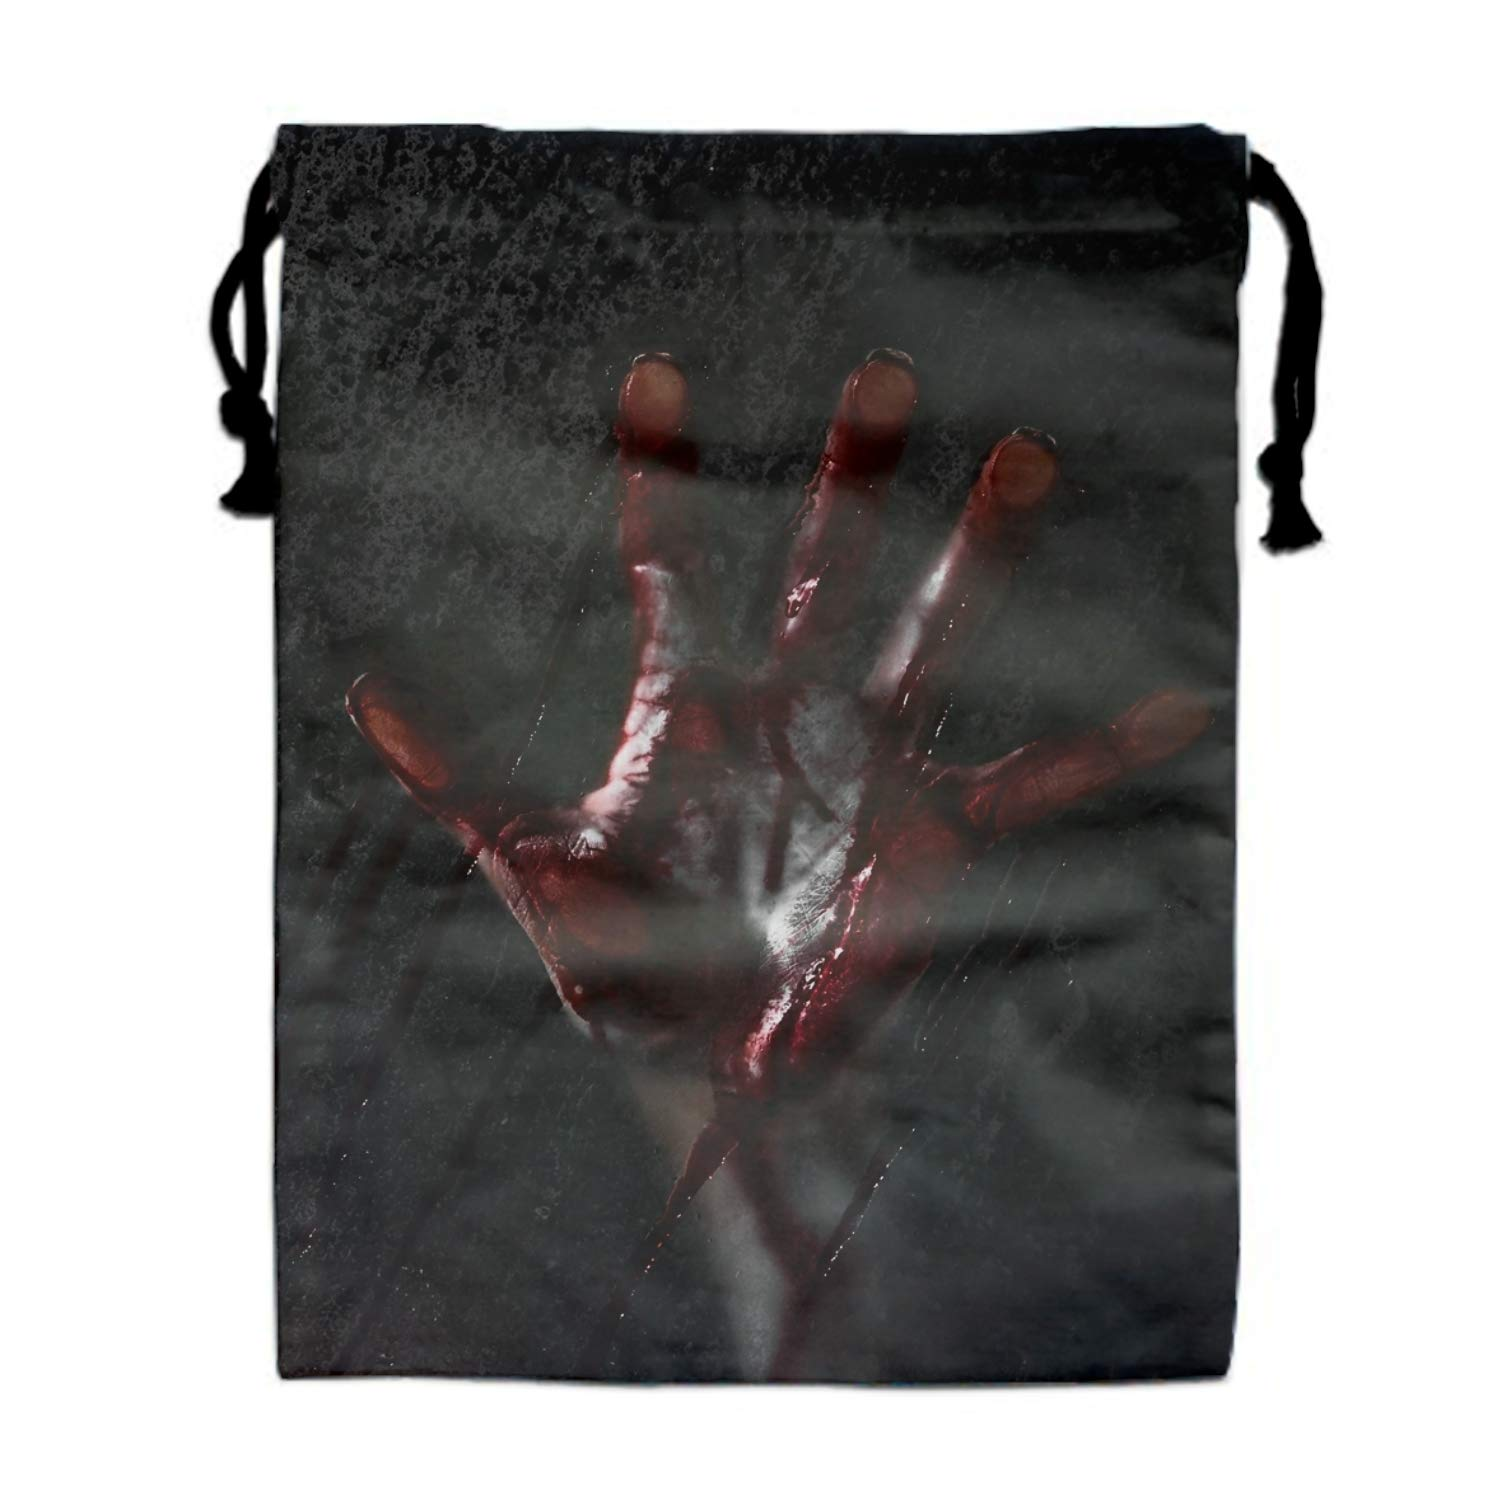 Portable Travel Horror Bloody Hand Storage Traveling Tote Shoe Bags with Drawstring 11.8 /× 15.7